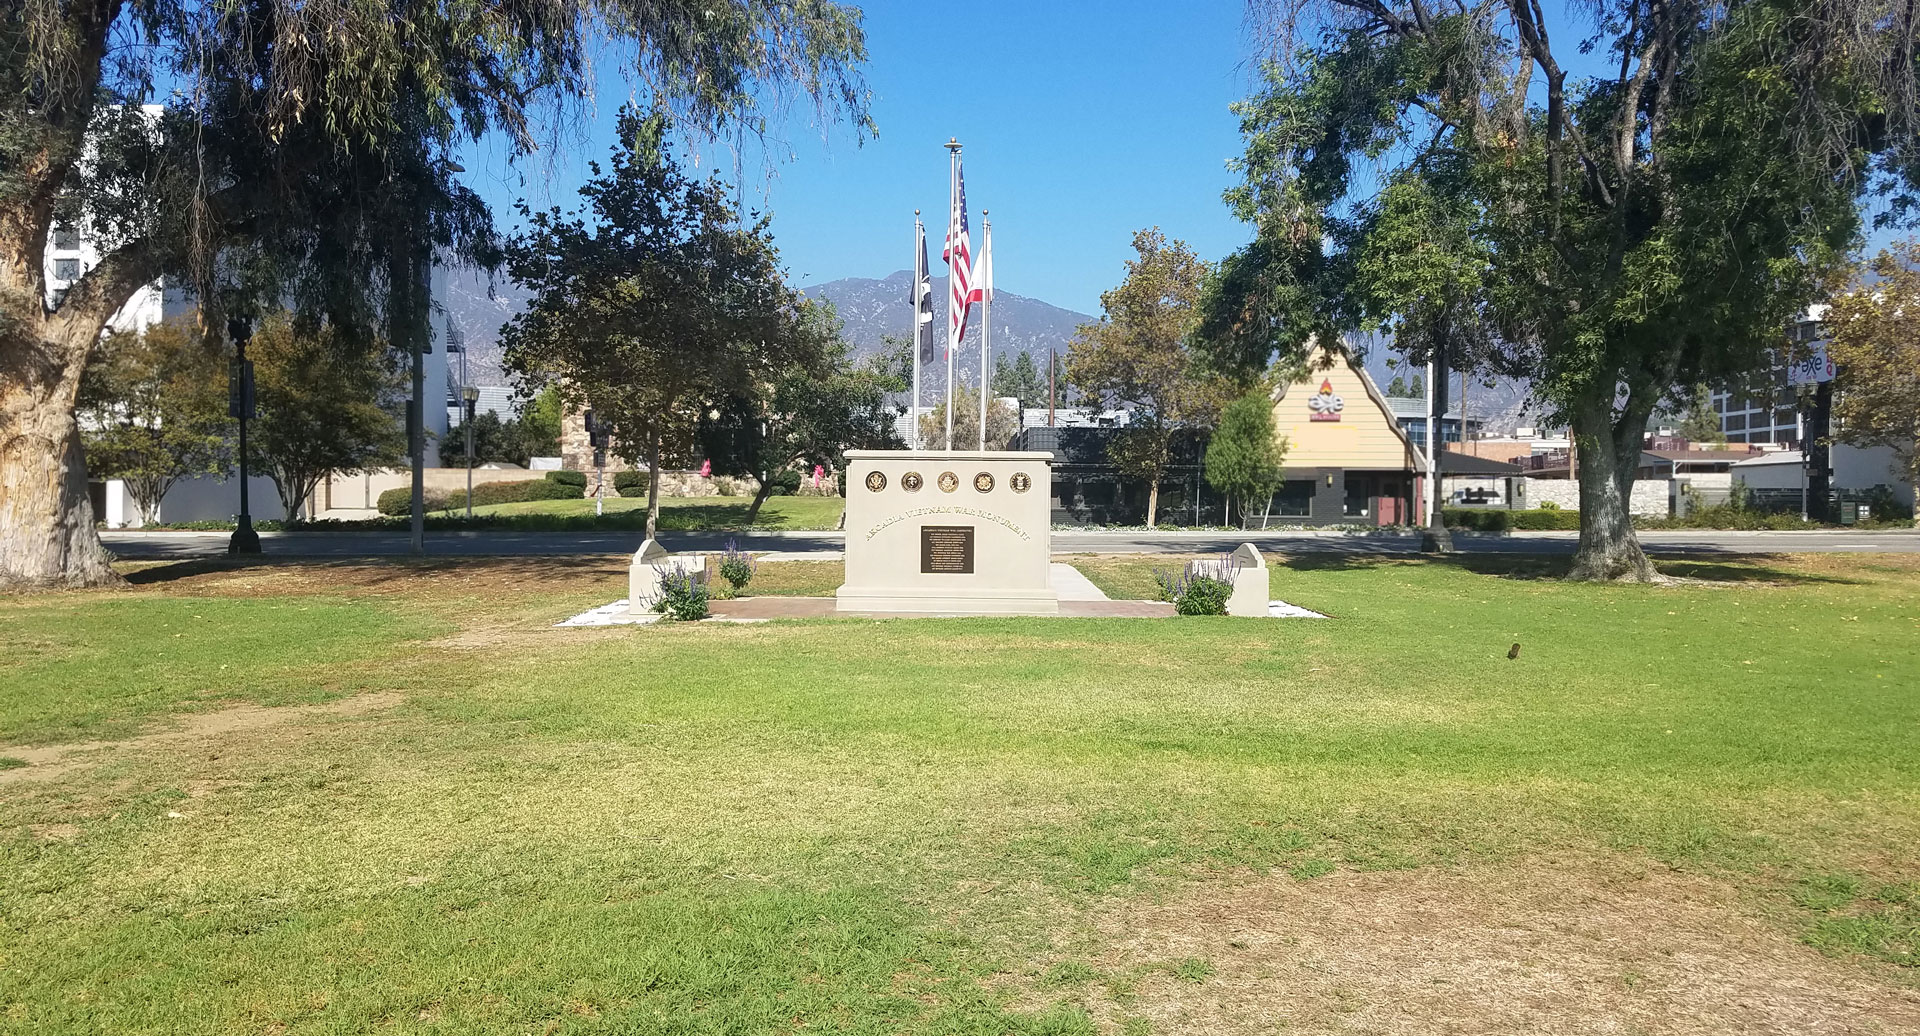 Long shot view of Monument